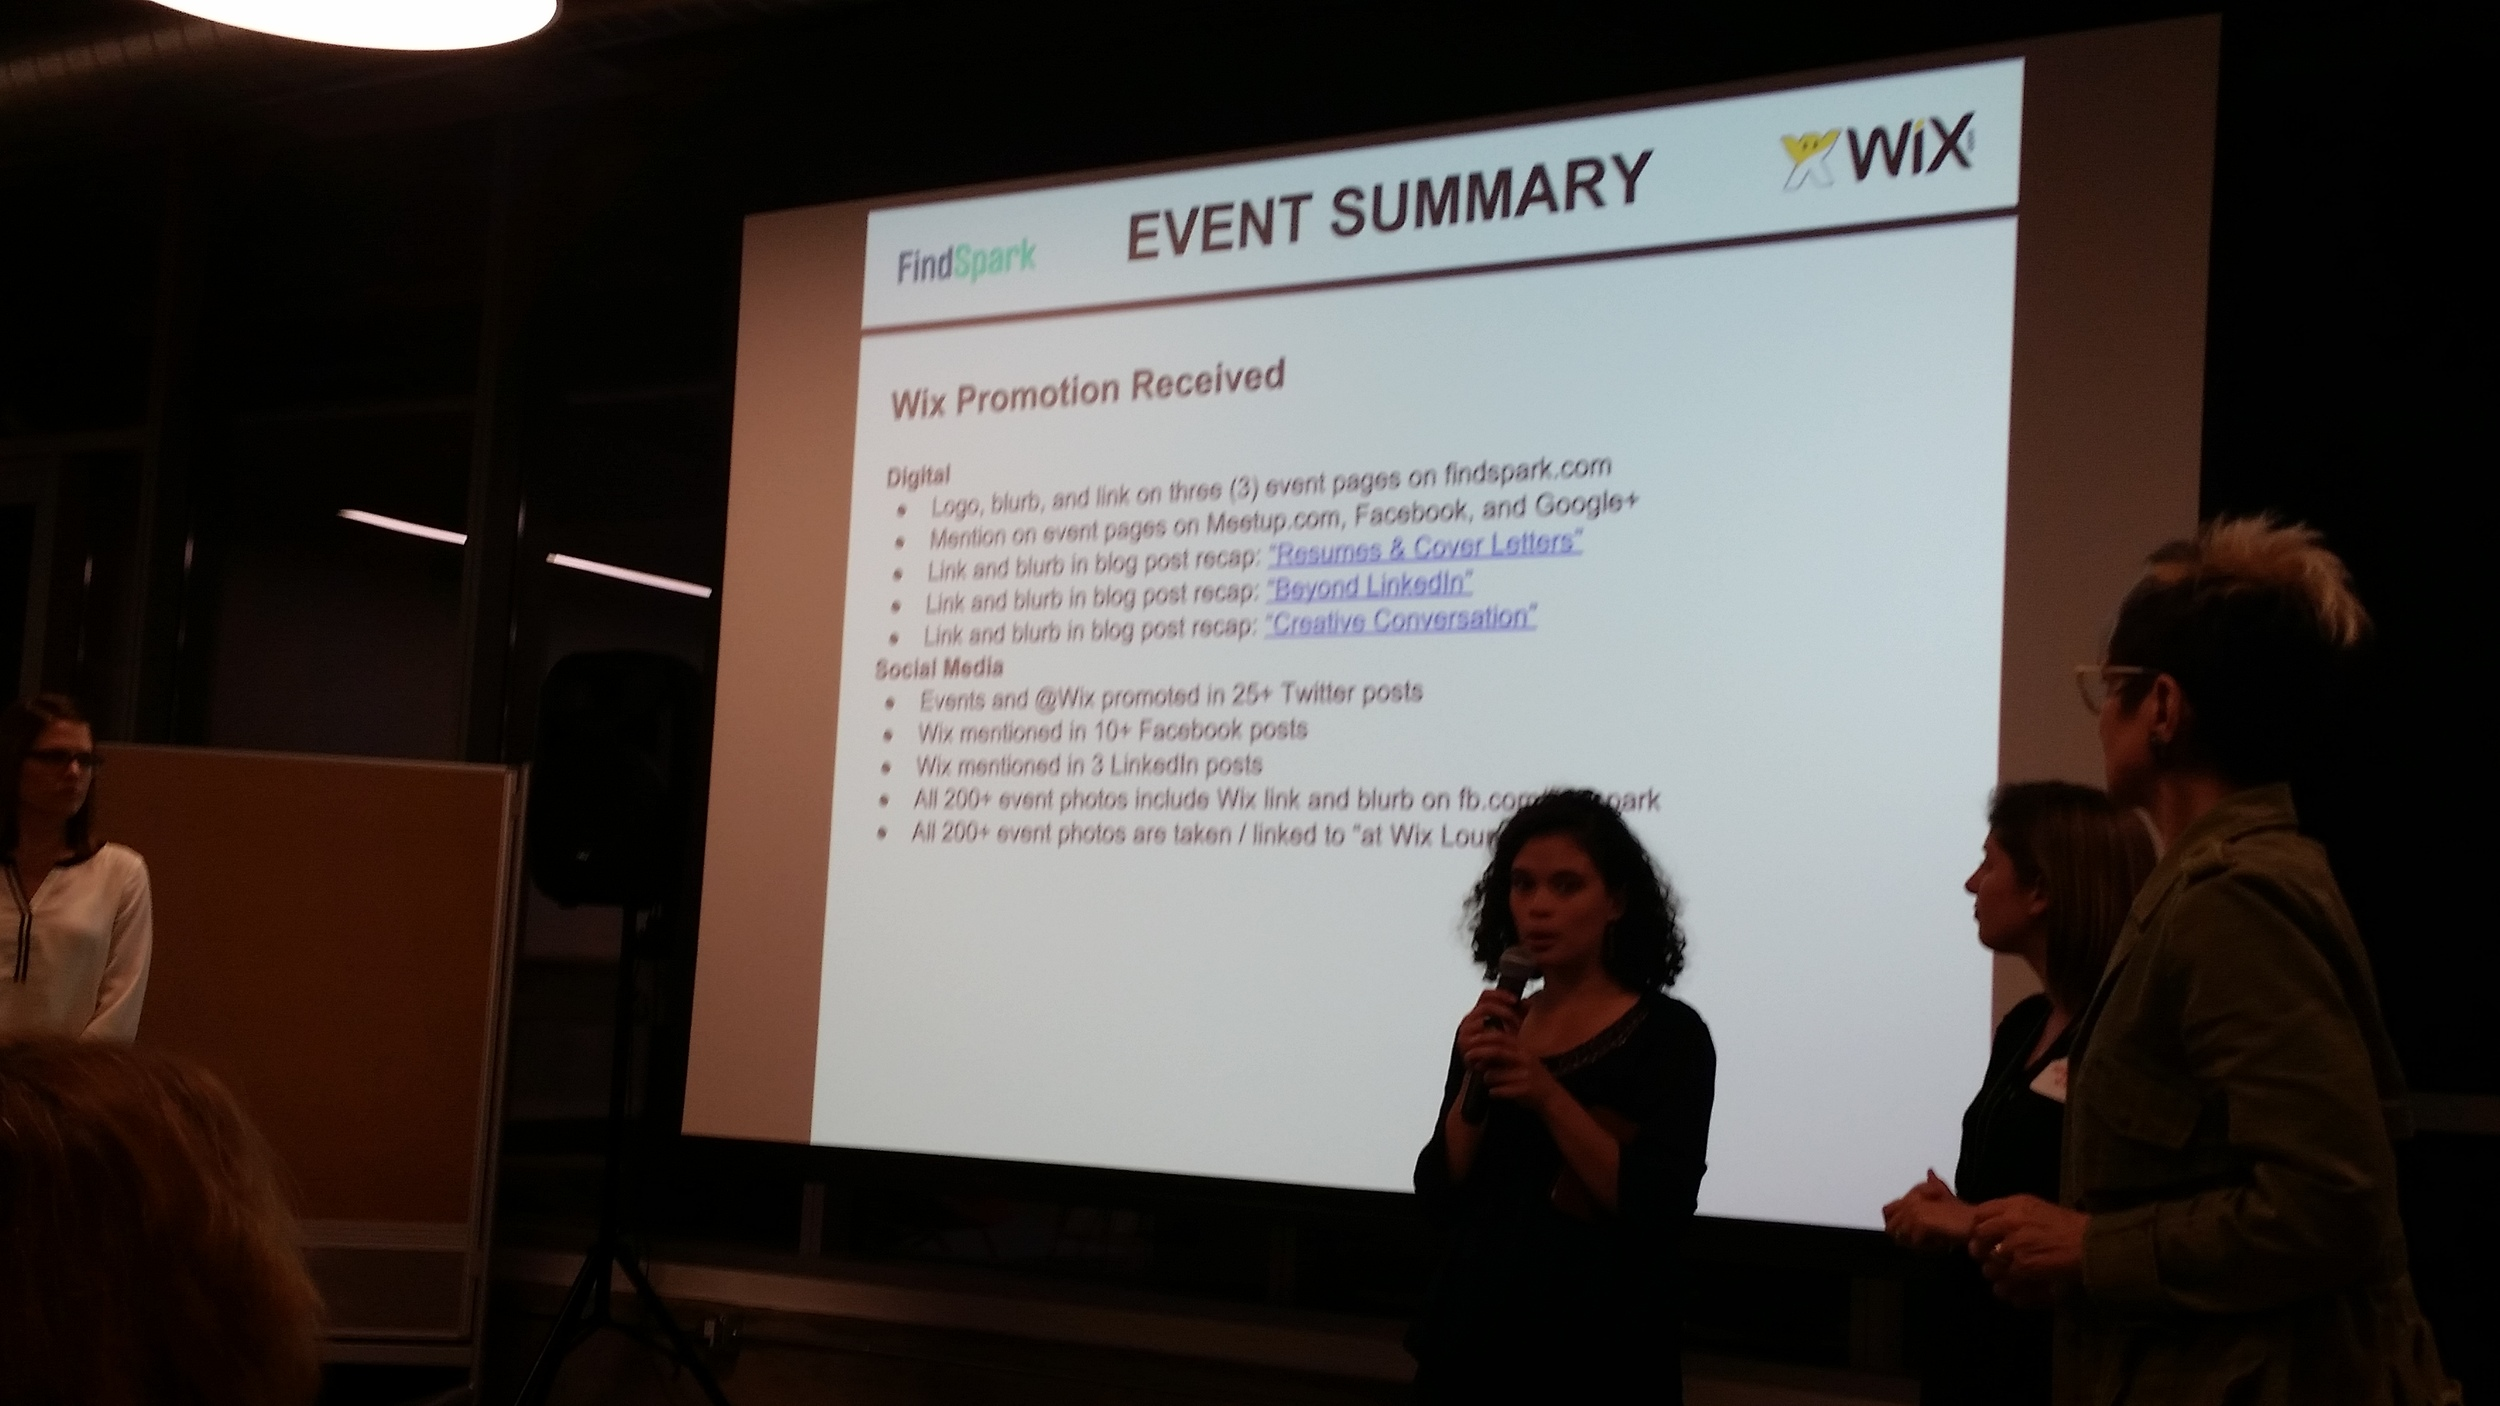 Adriani Leon presenting at the Wix event.